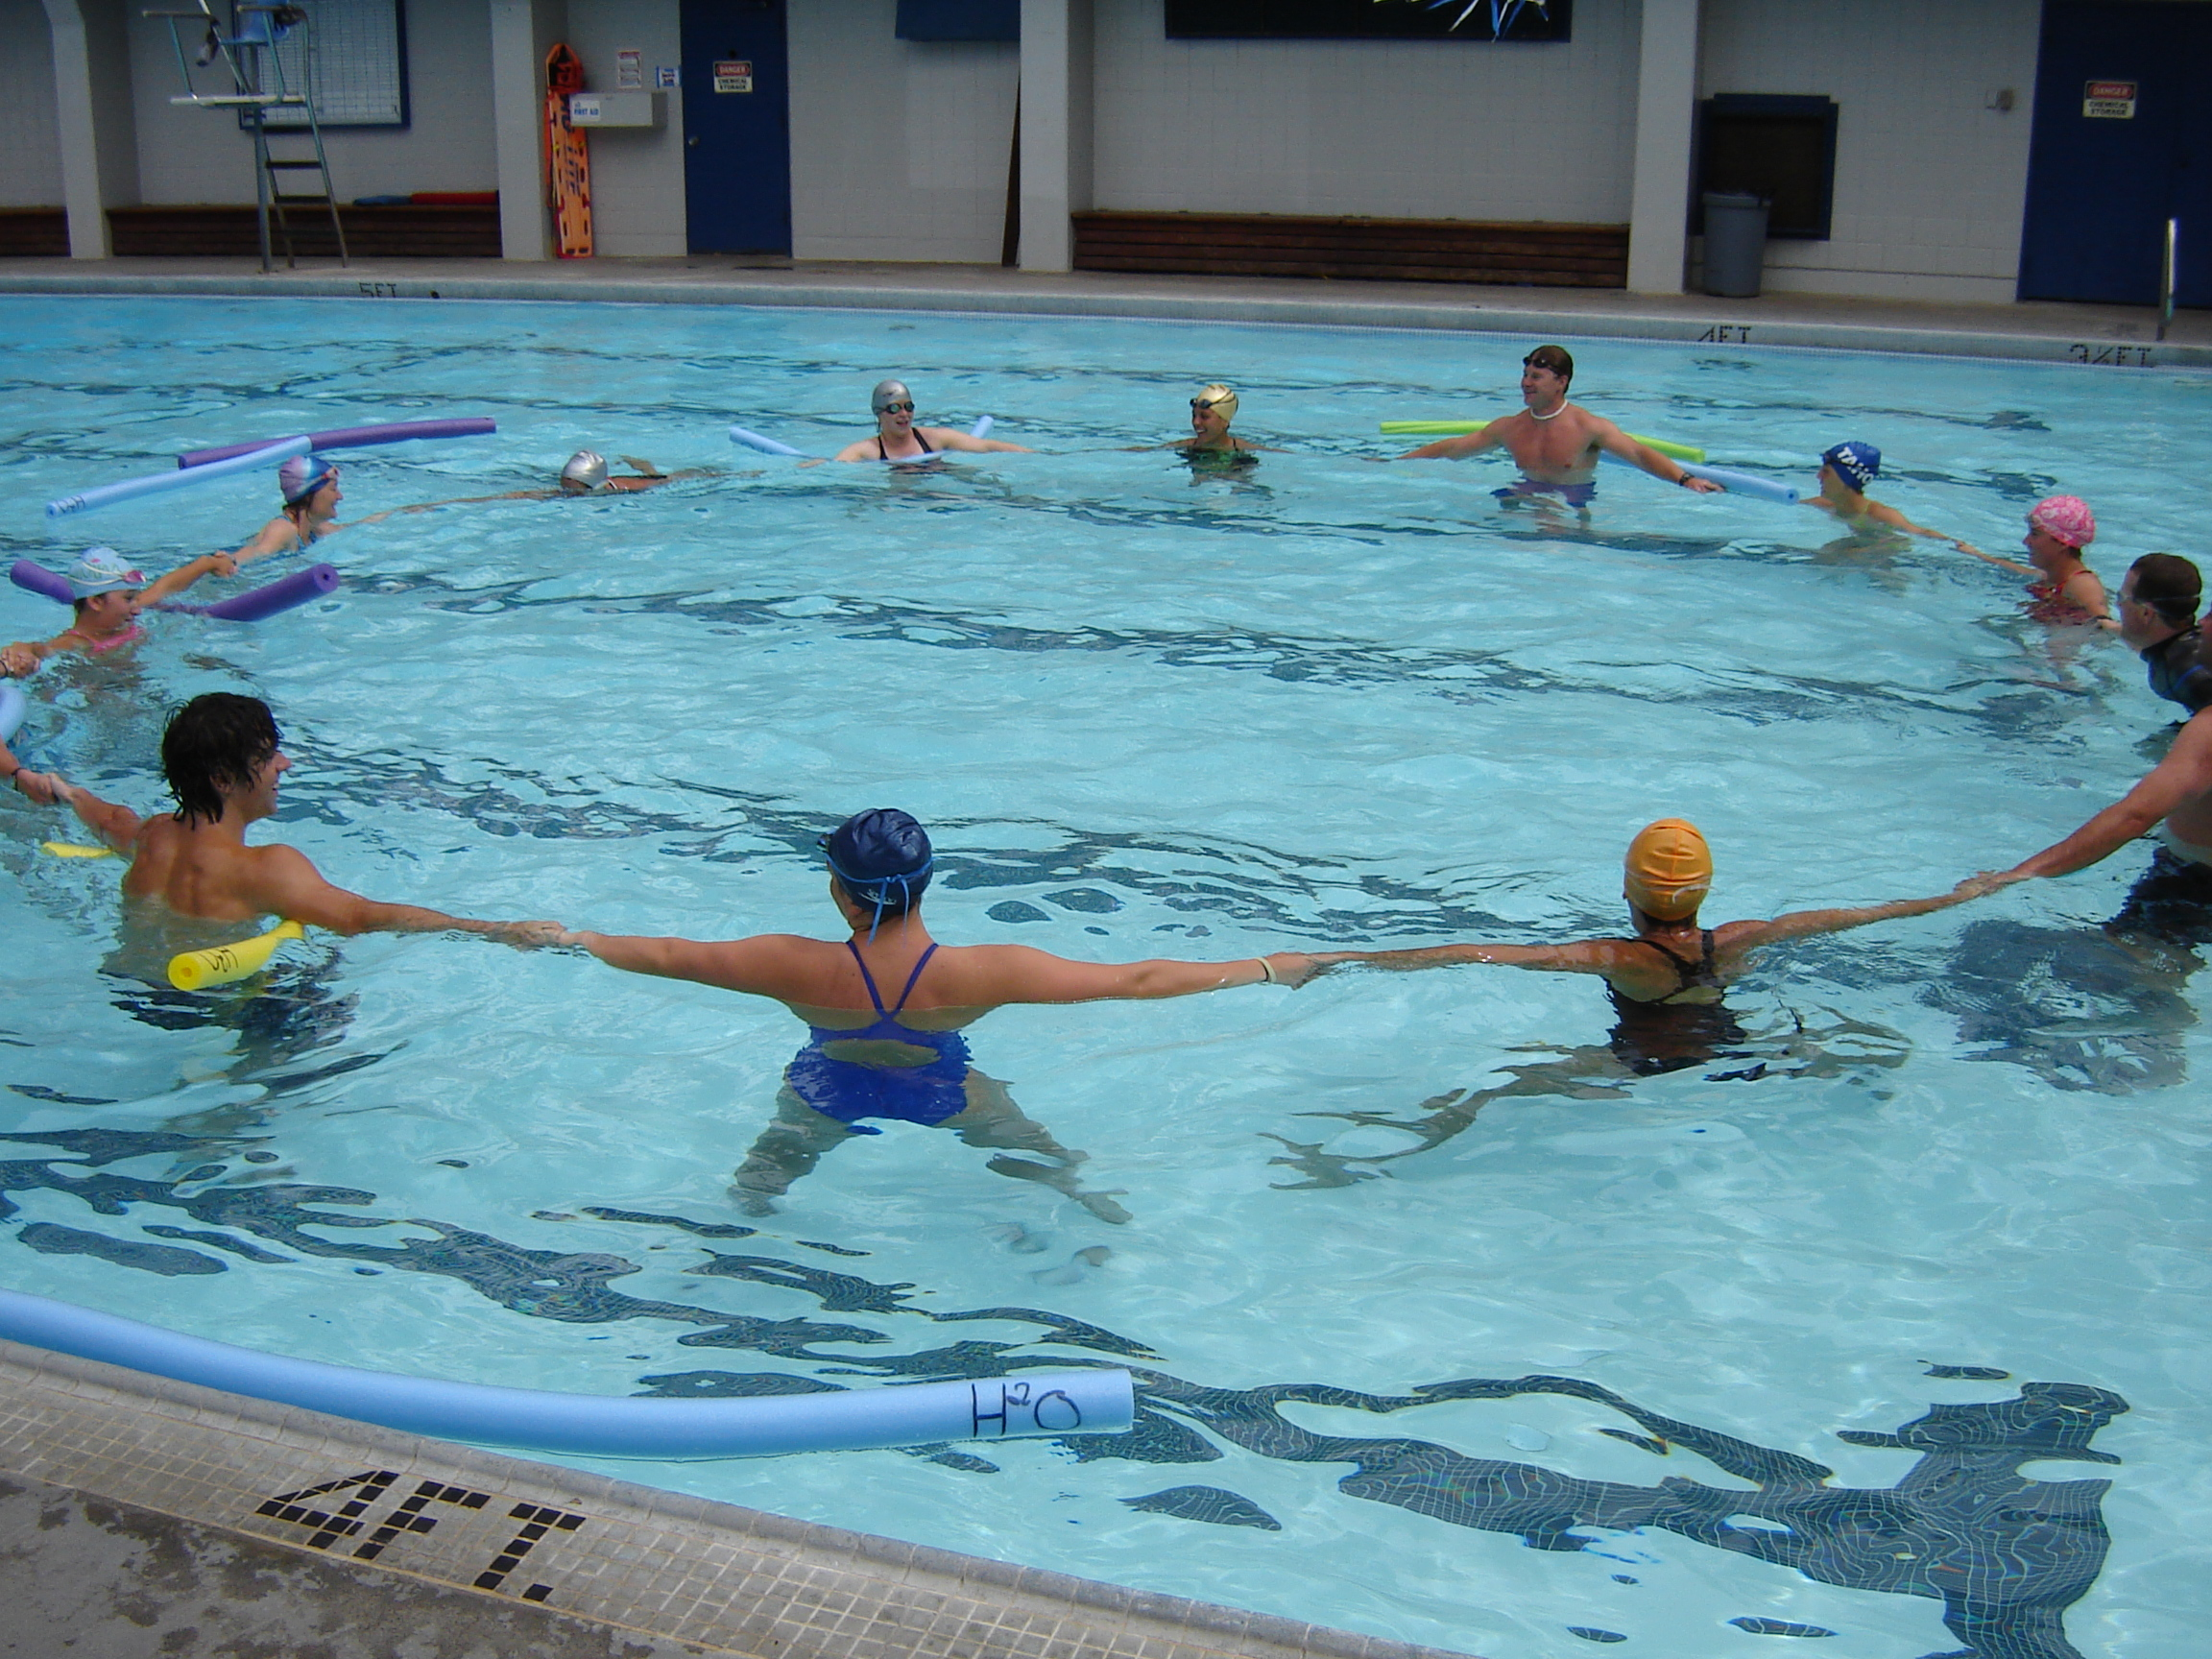 Staff forming a circle in the swimming pool